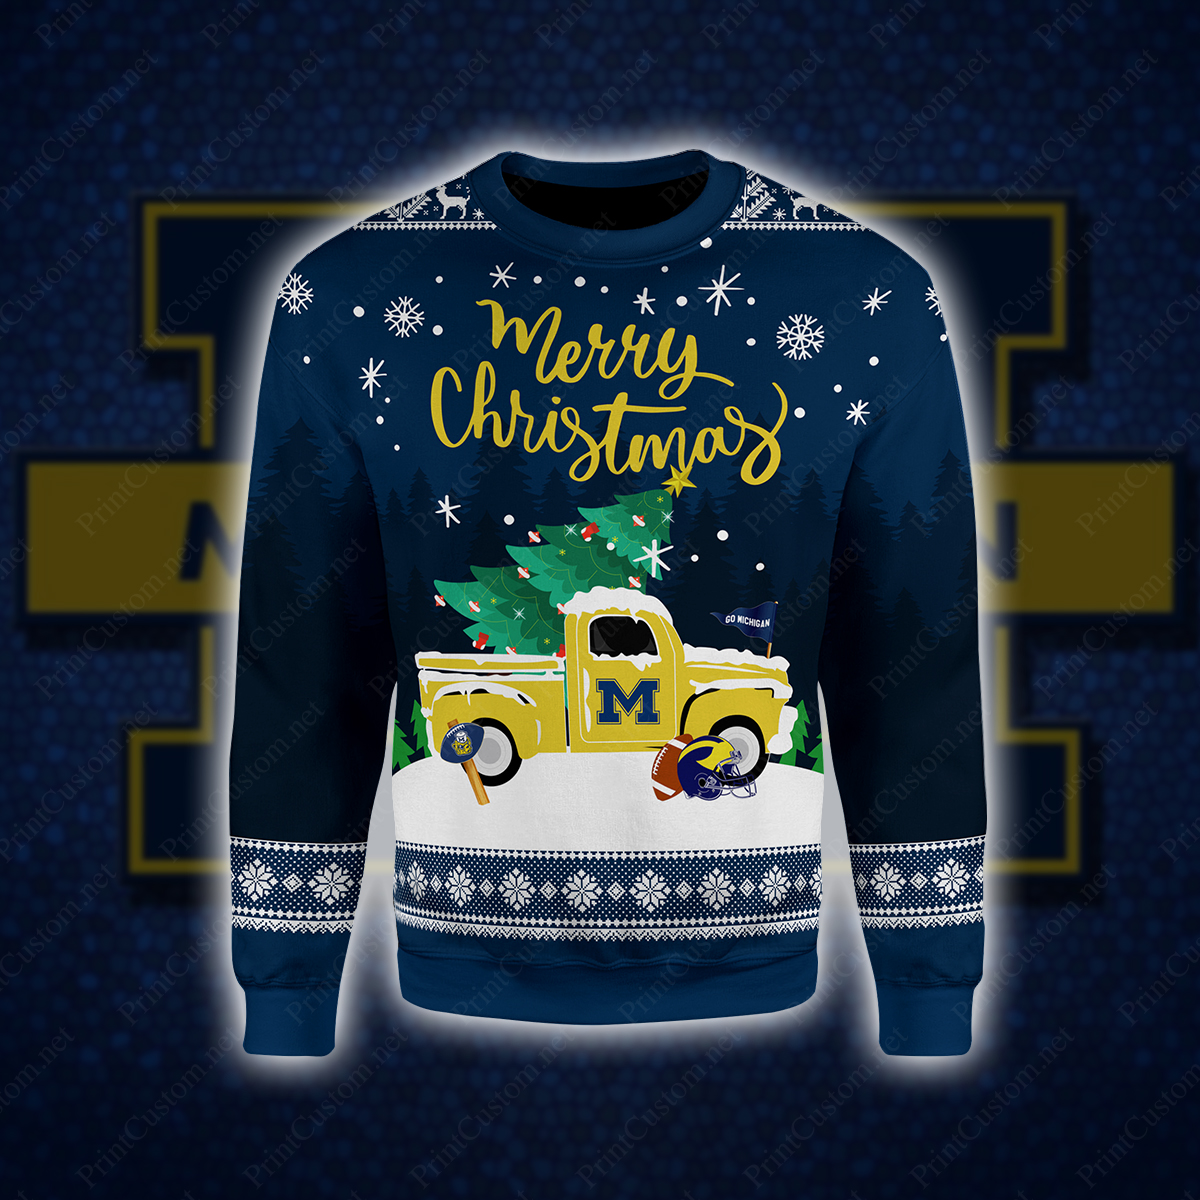 Michigan wolverines merry christmas full printing sweater 1